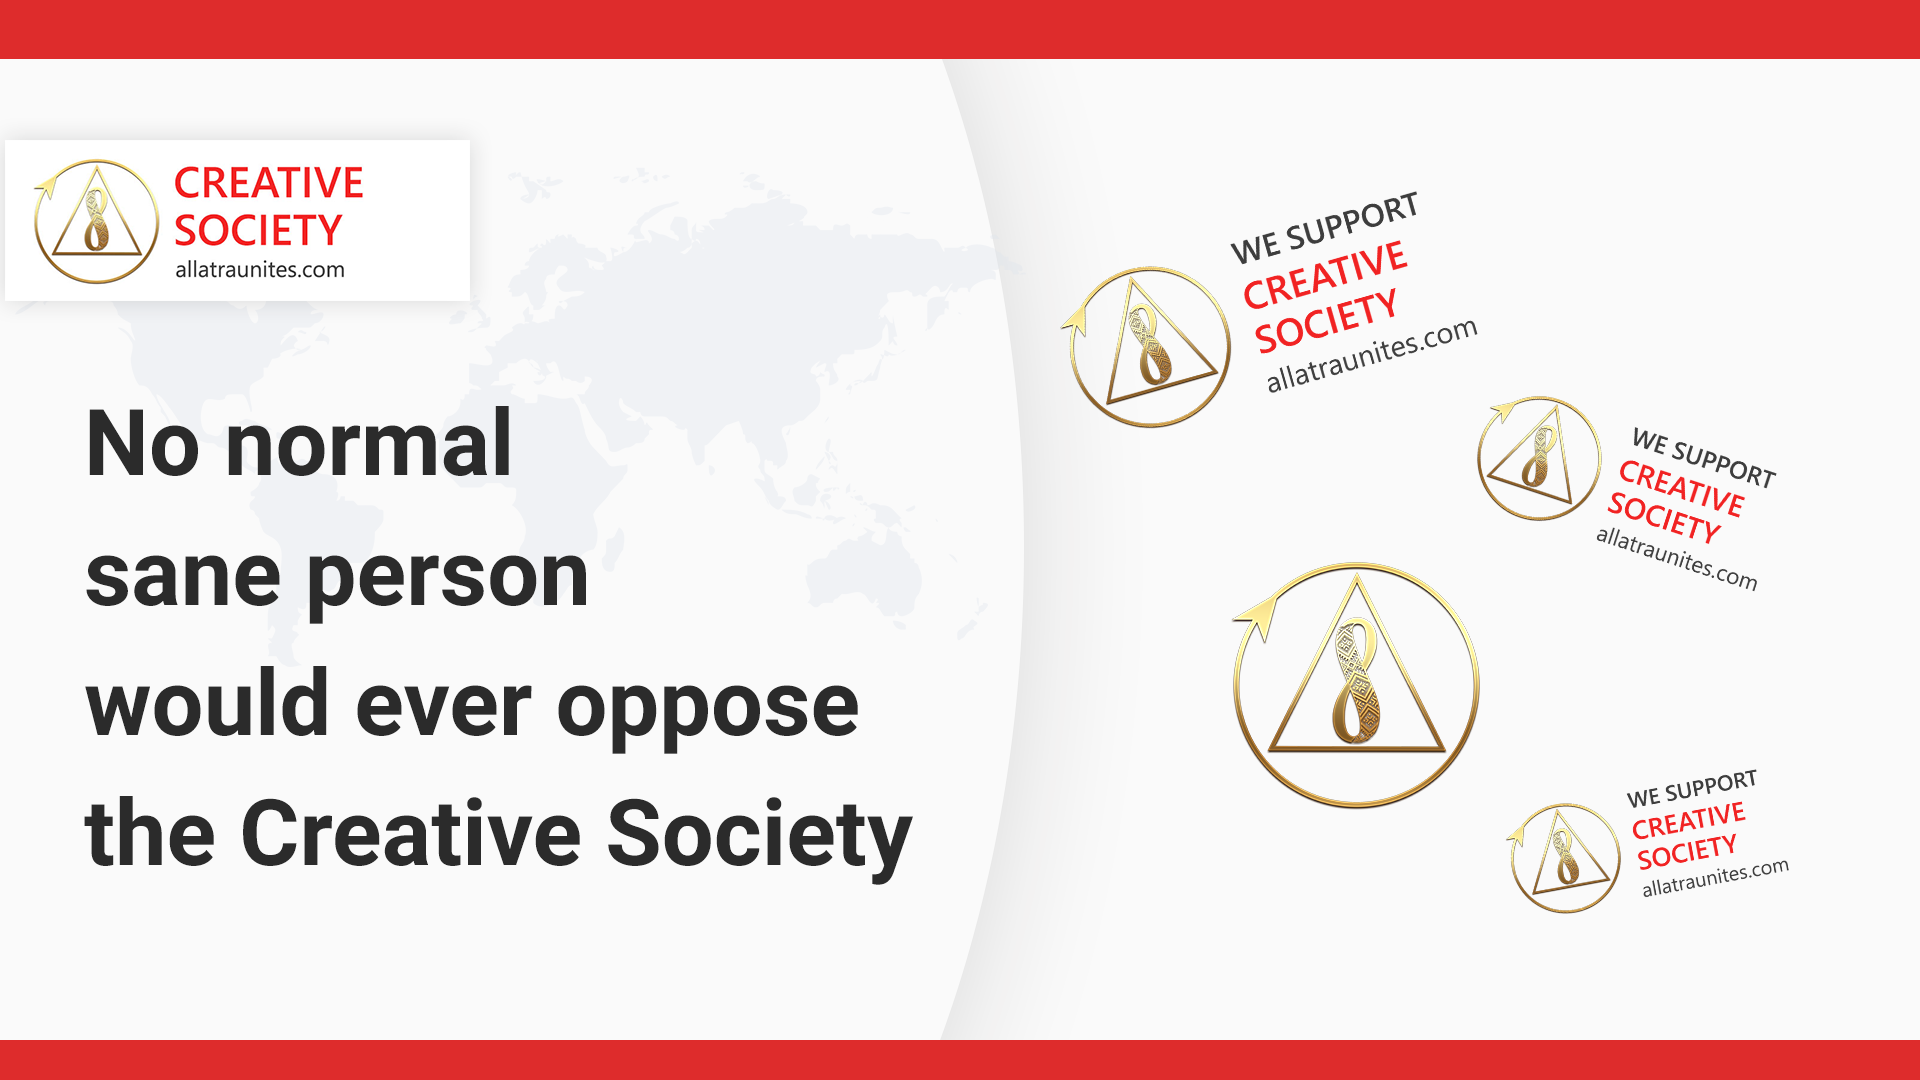 We support the Creative Society